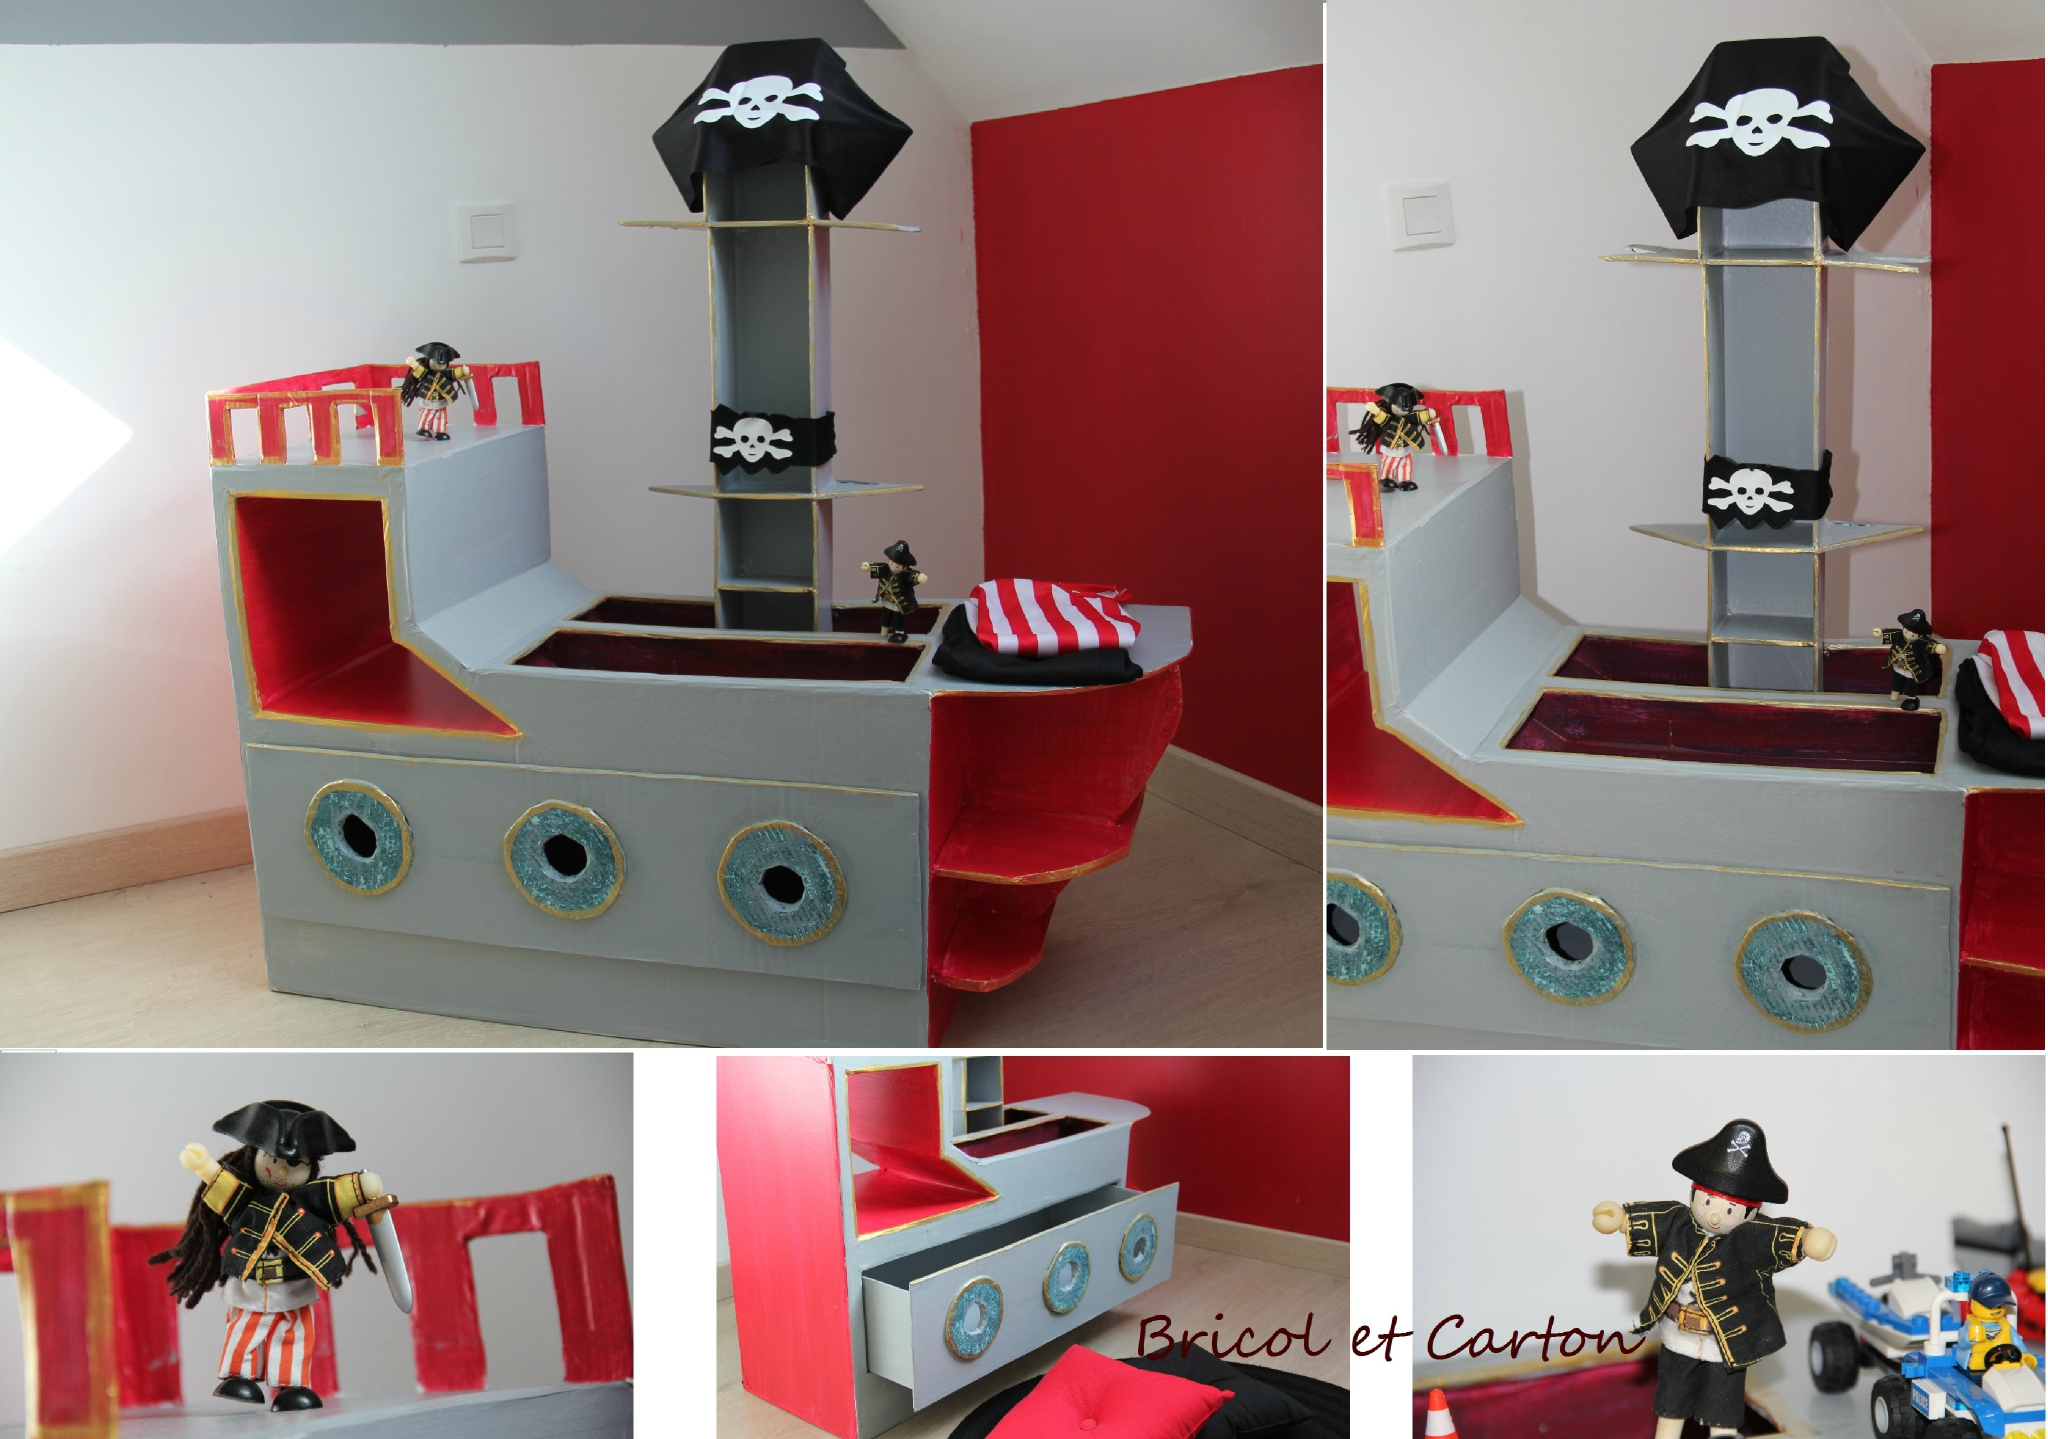 Table De Chevet Pirate meuble pirate en carton { diy} - bricol et carton